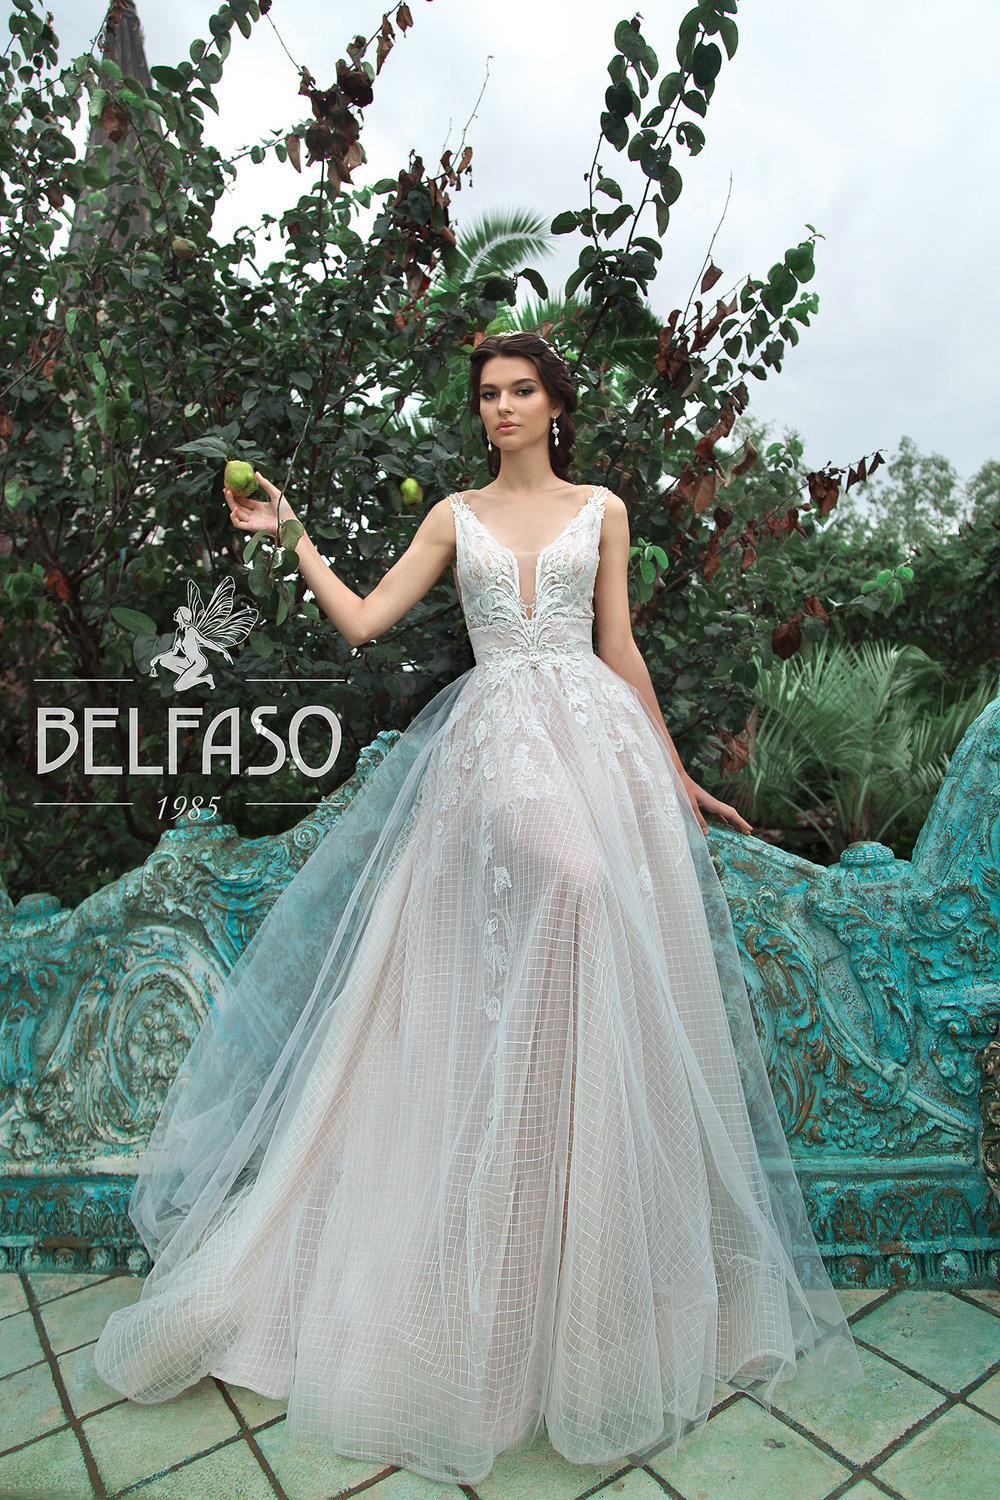 BLISS dress by BELFASO